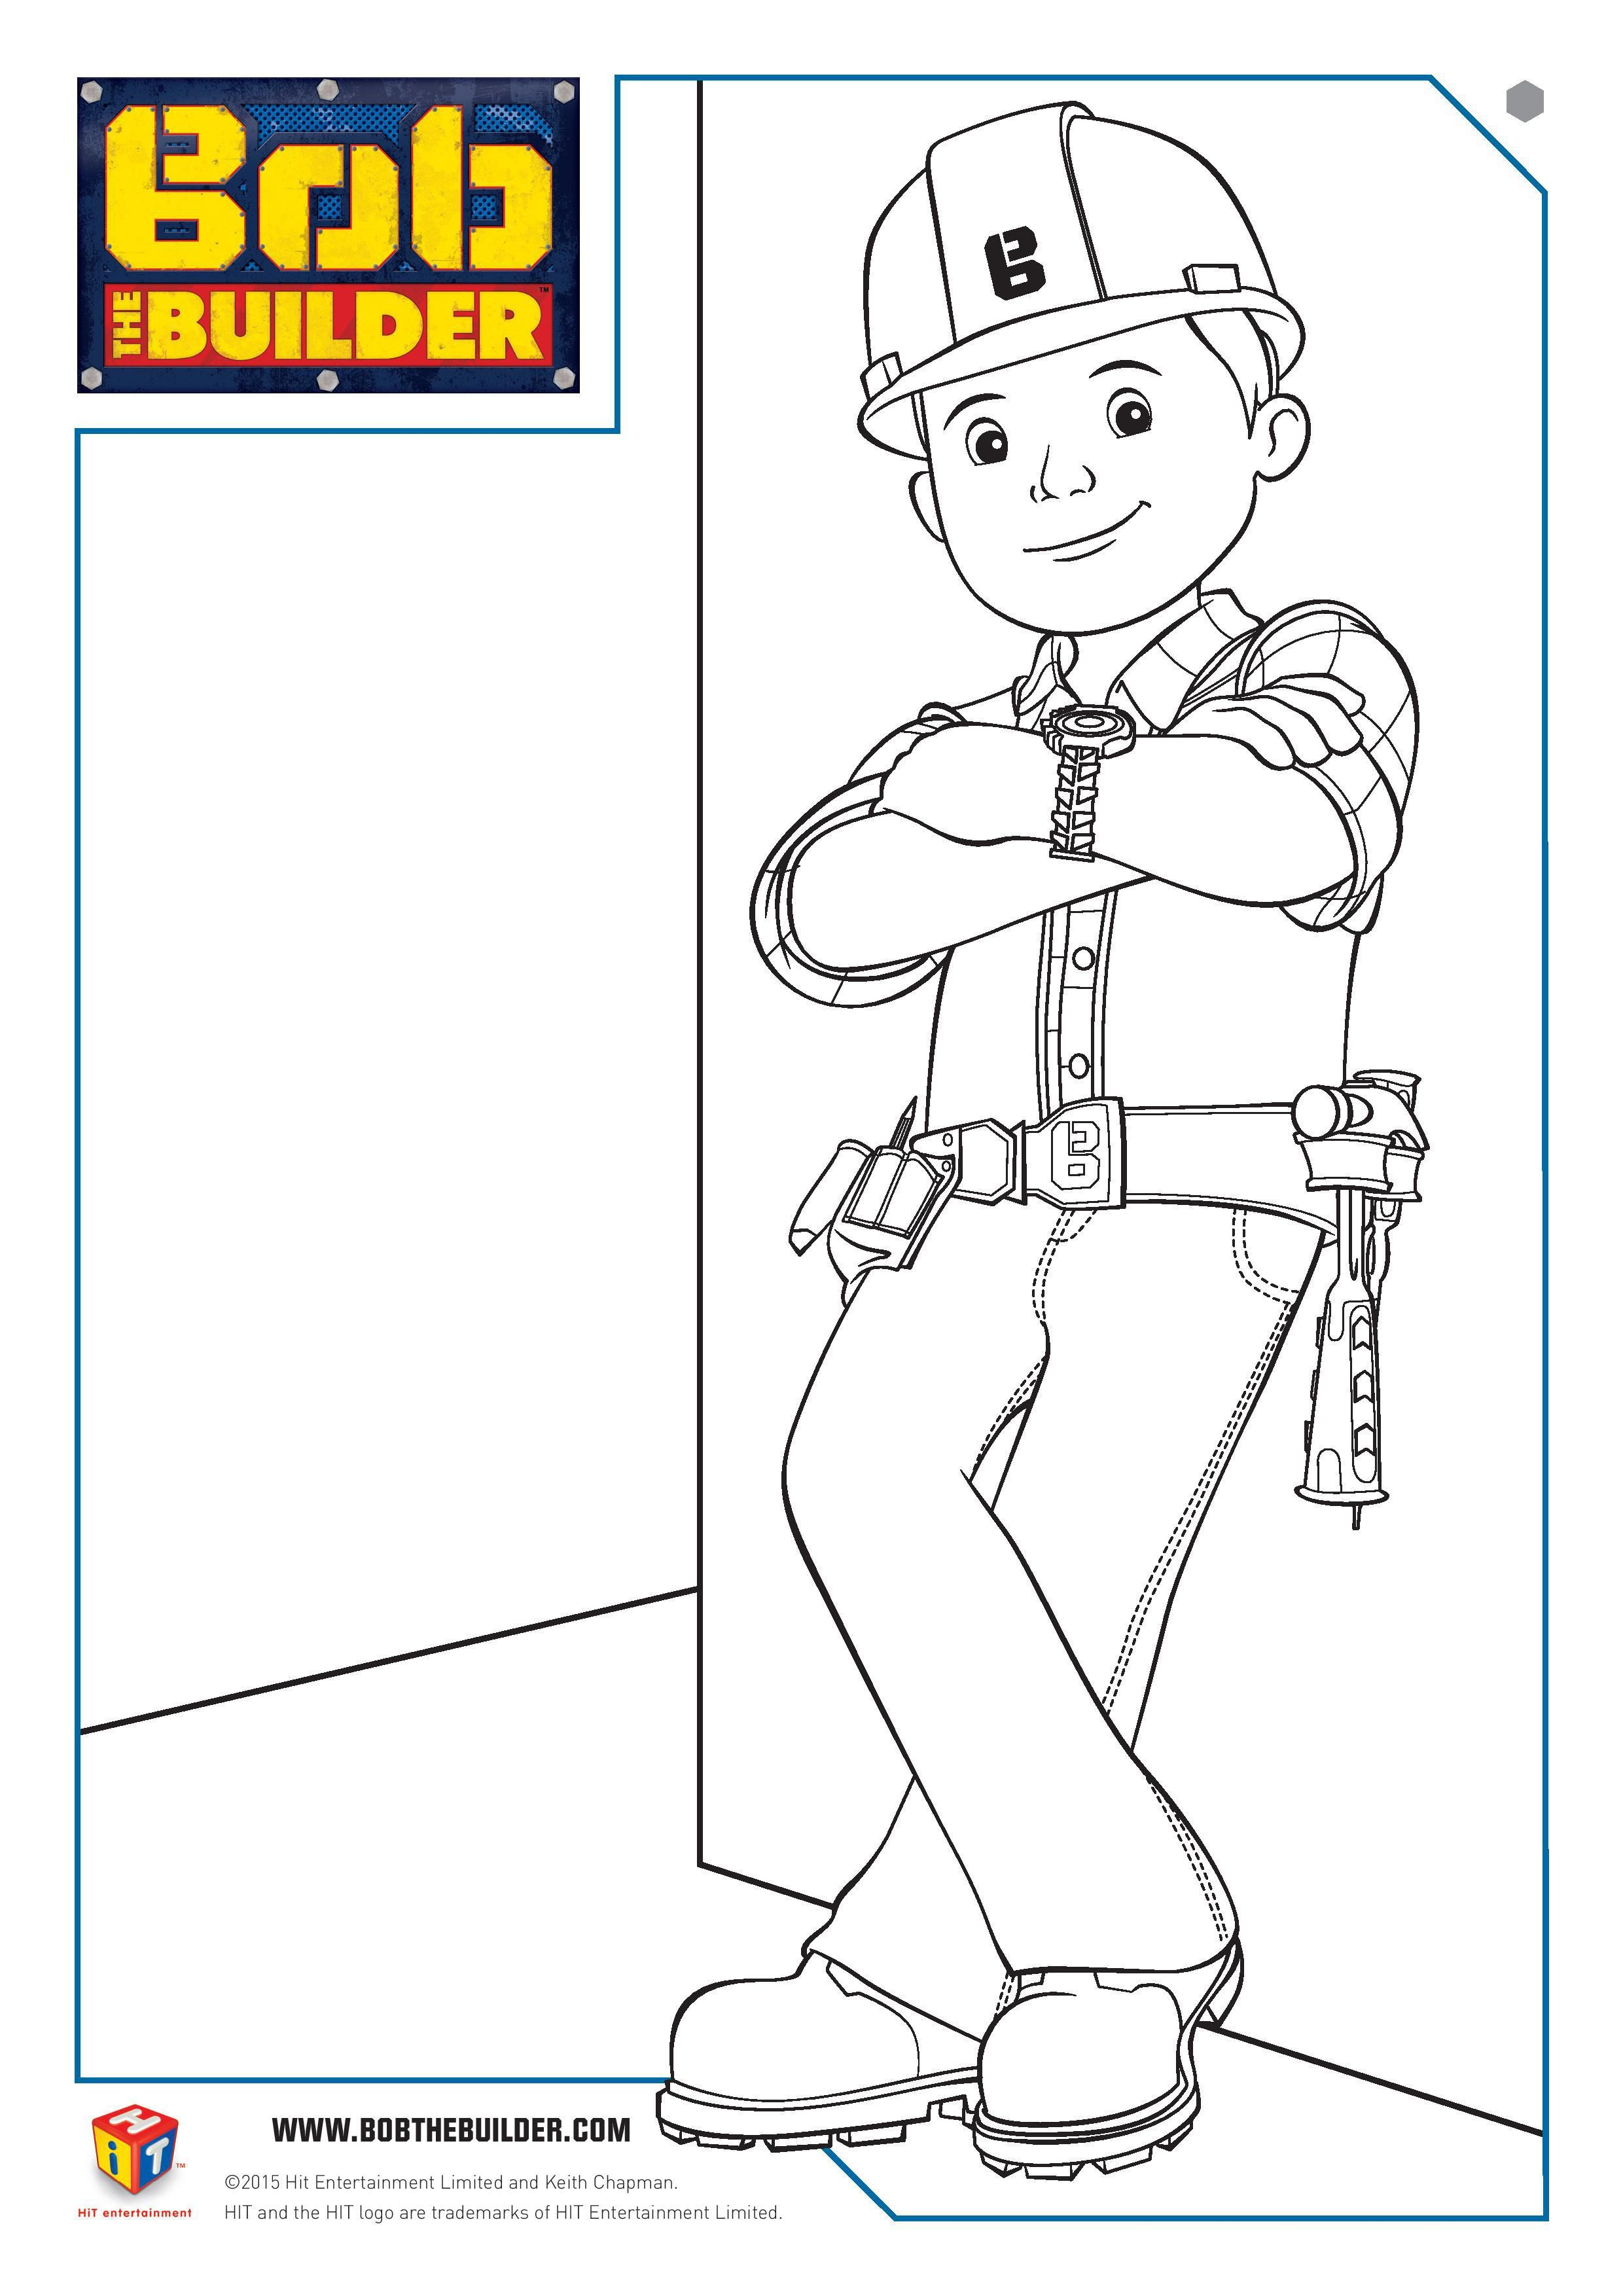 Bob the Builder Twitter Party and Colouring Page | Free printable ...